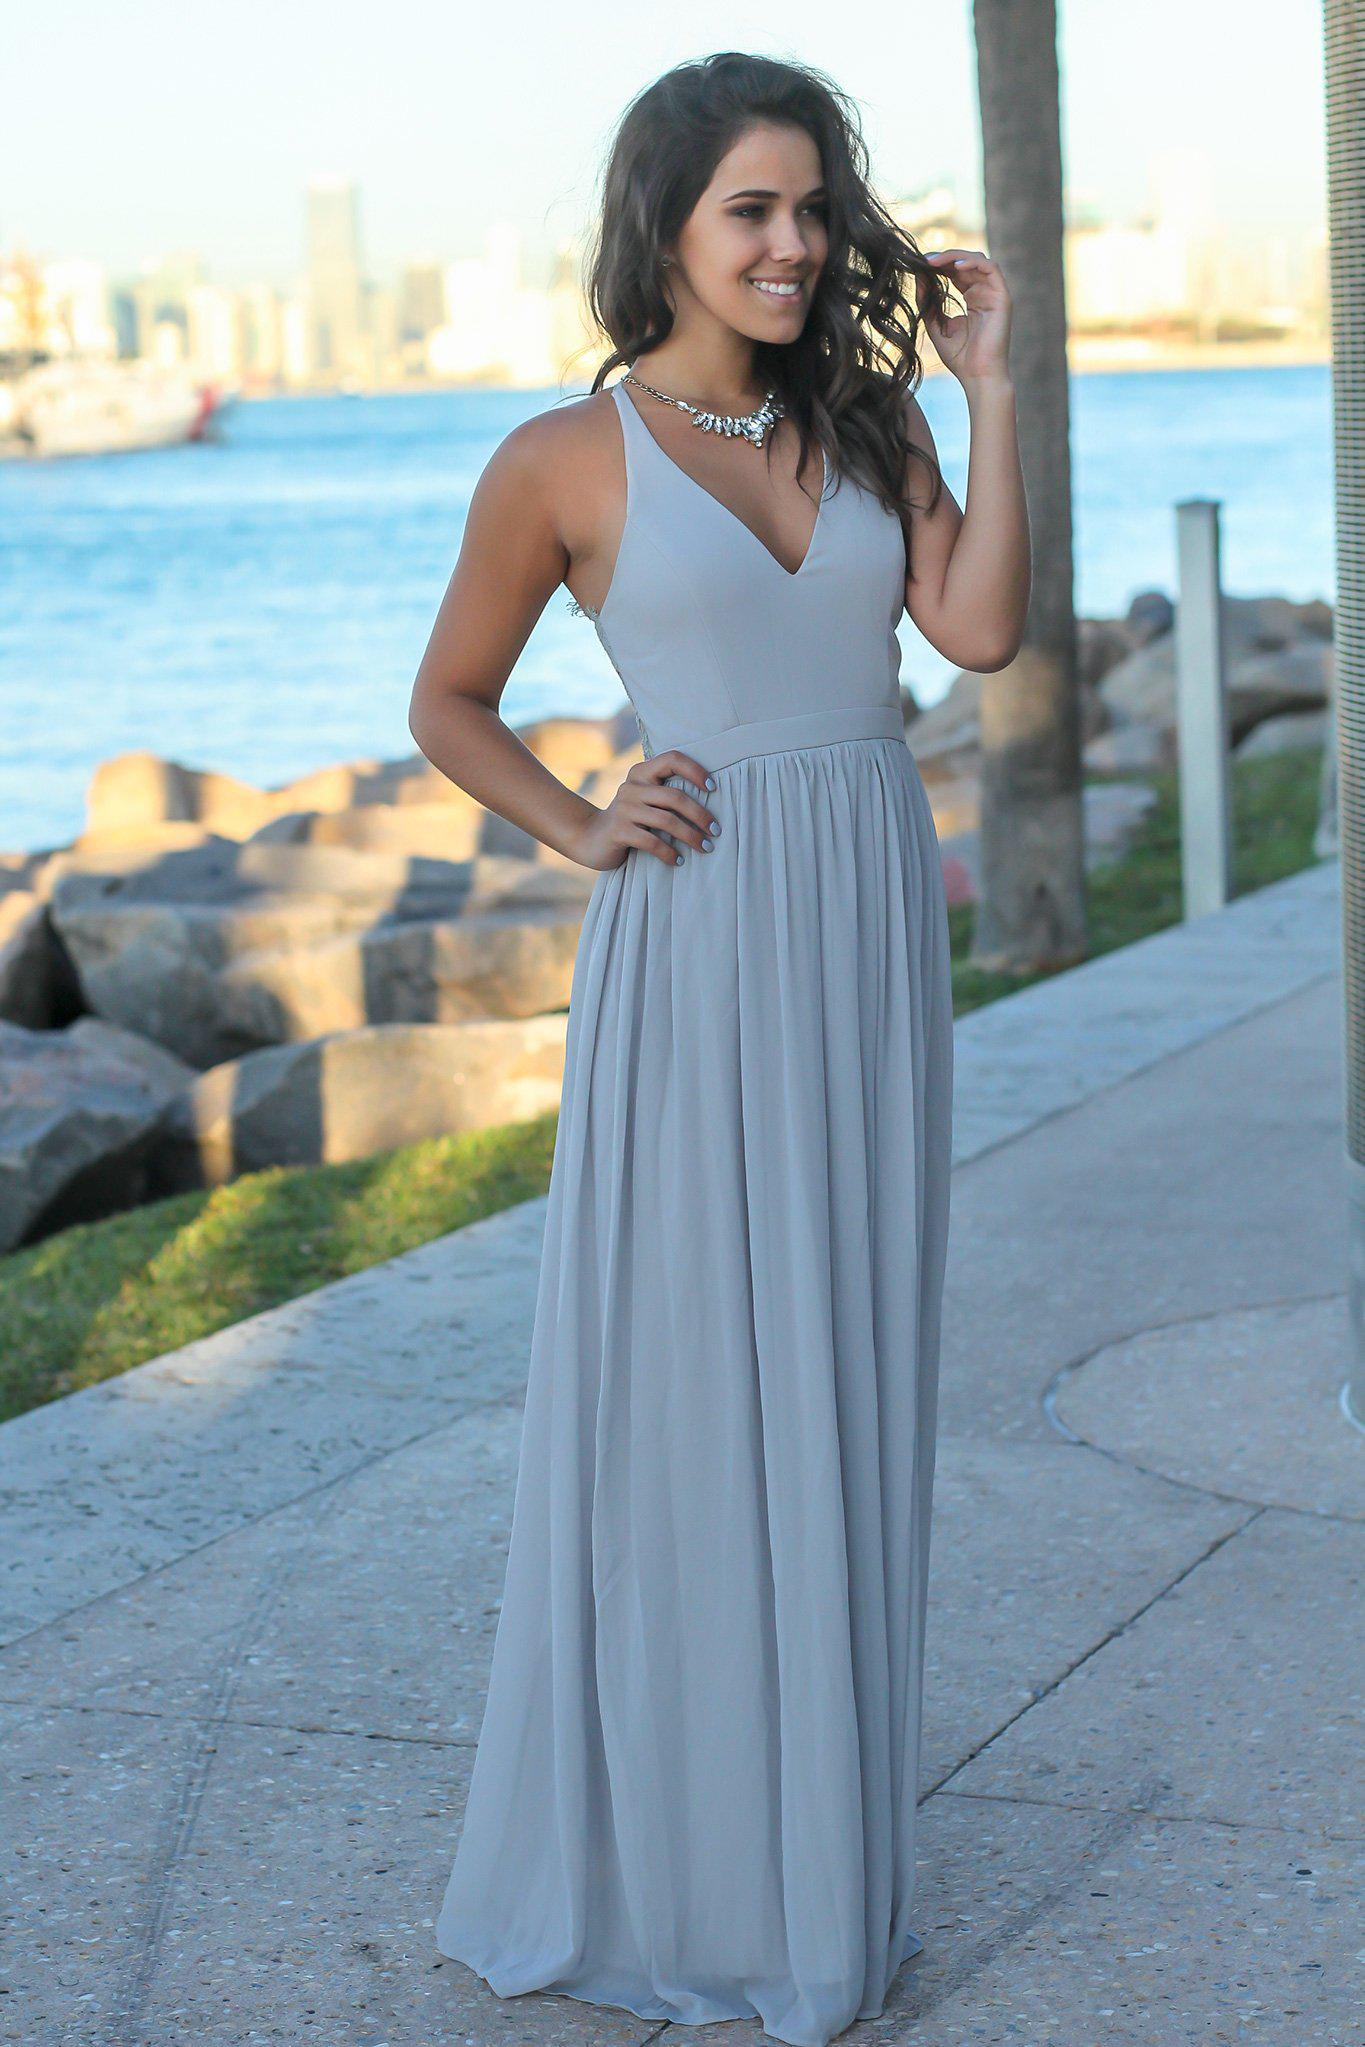 Modern Prom Dress Stores In Tulsa Ok Picture Collection - All ...